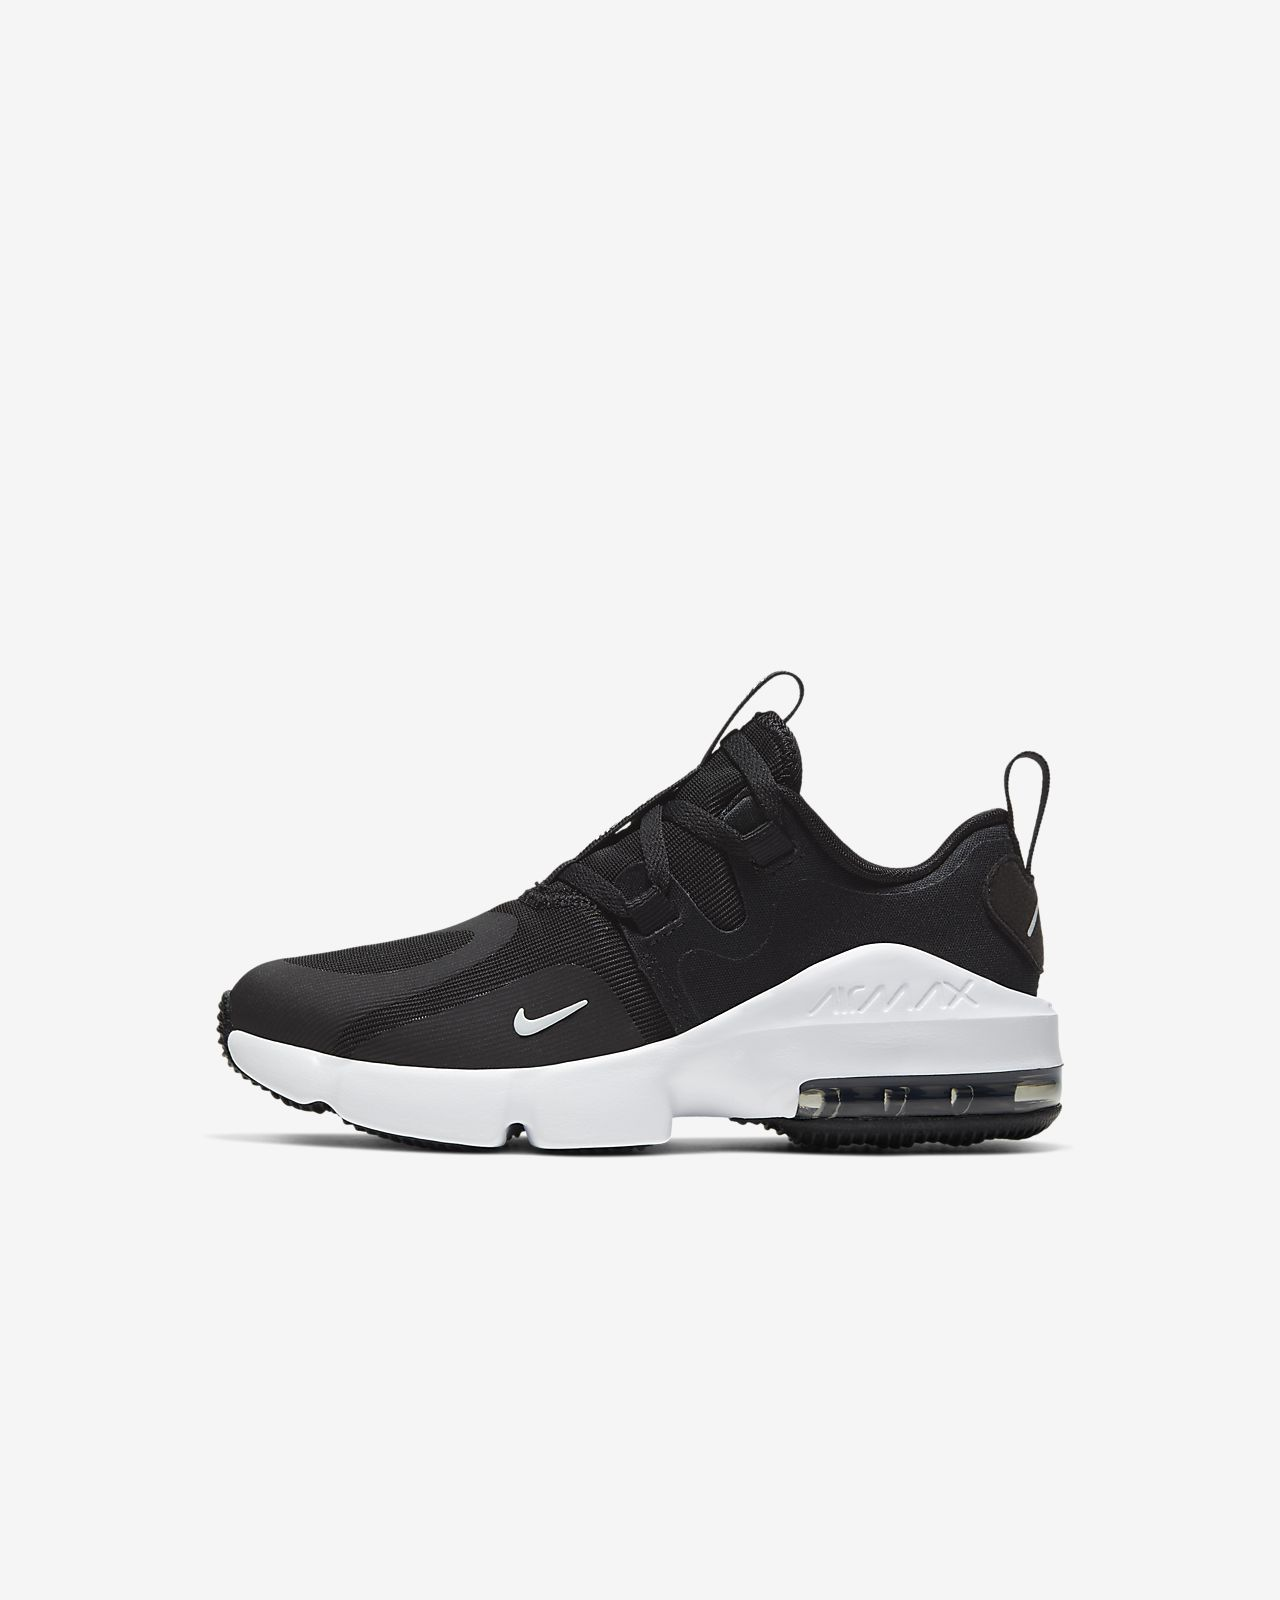 2nike nuove air max